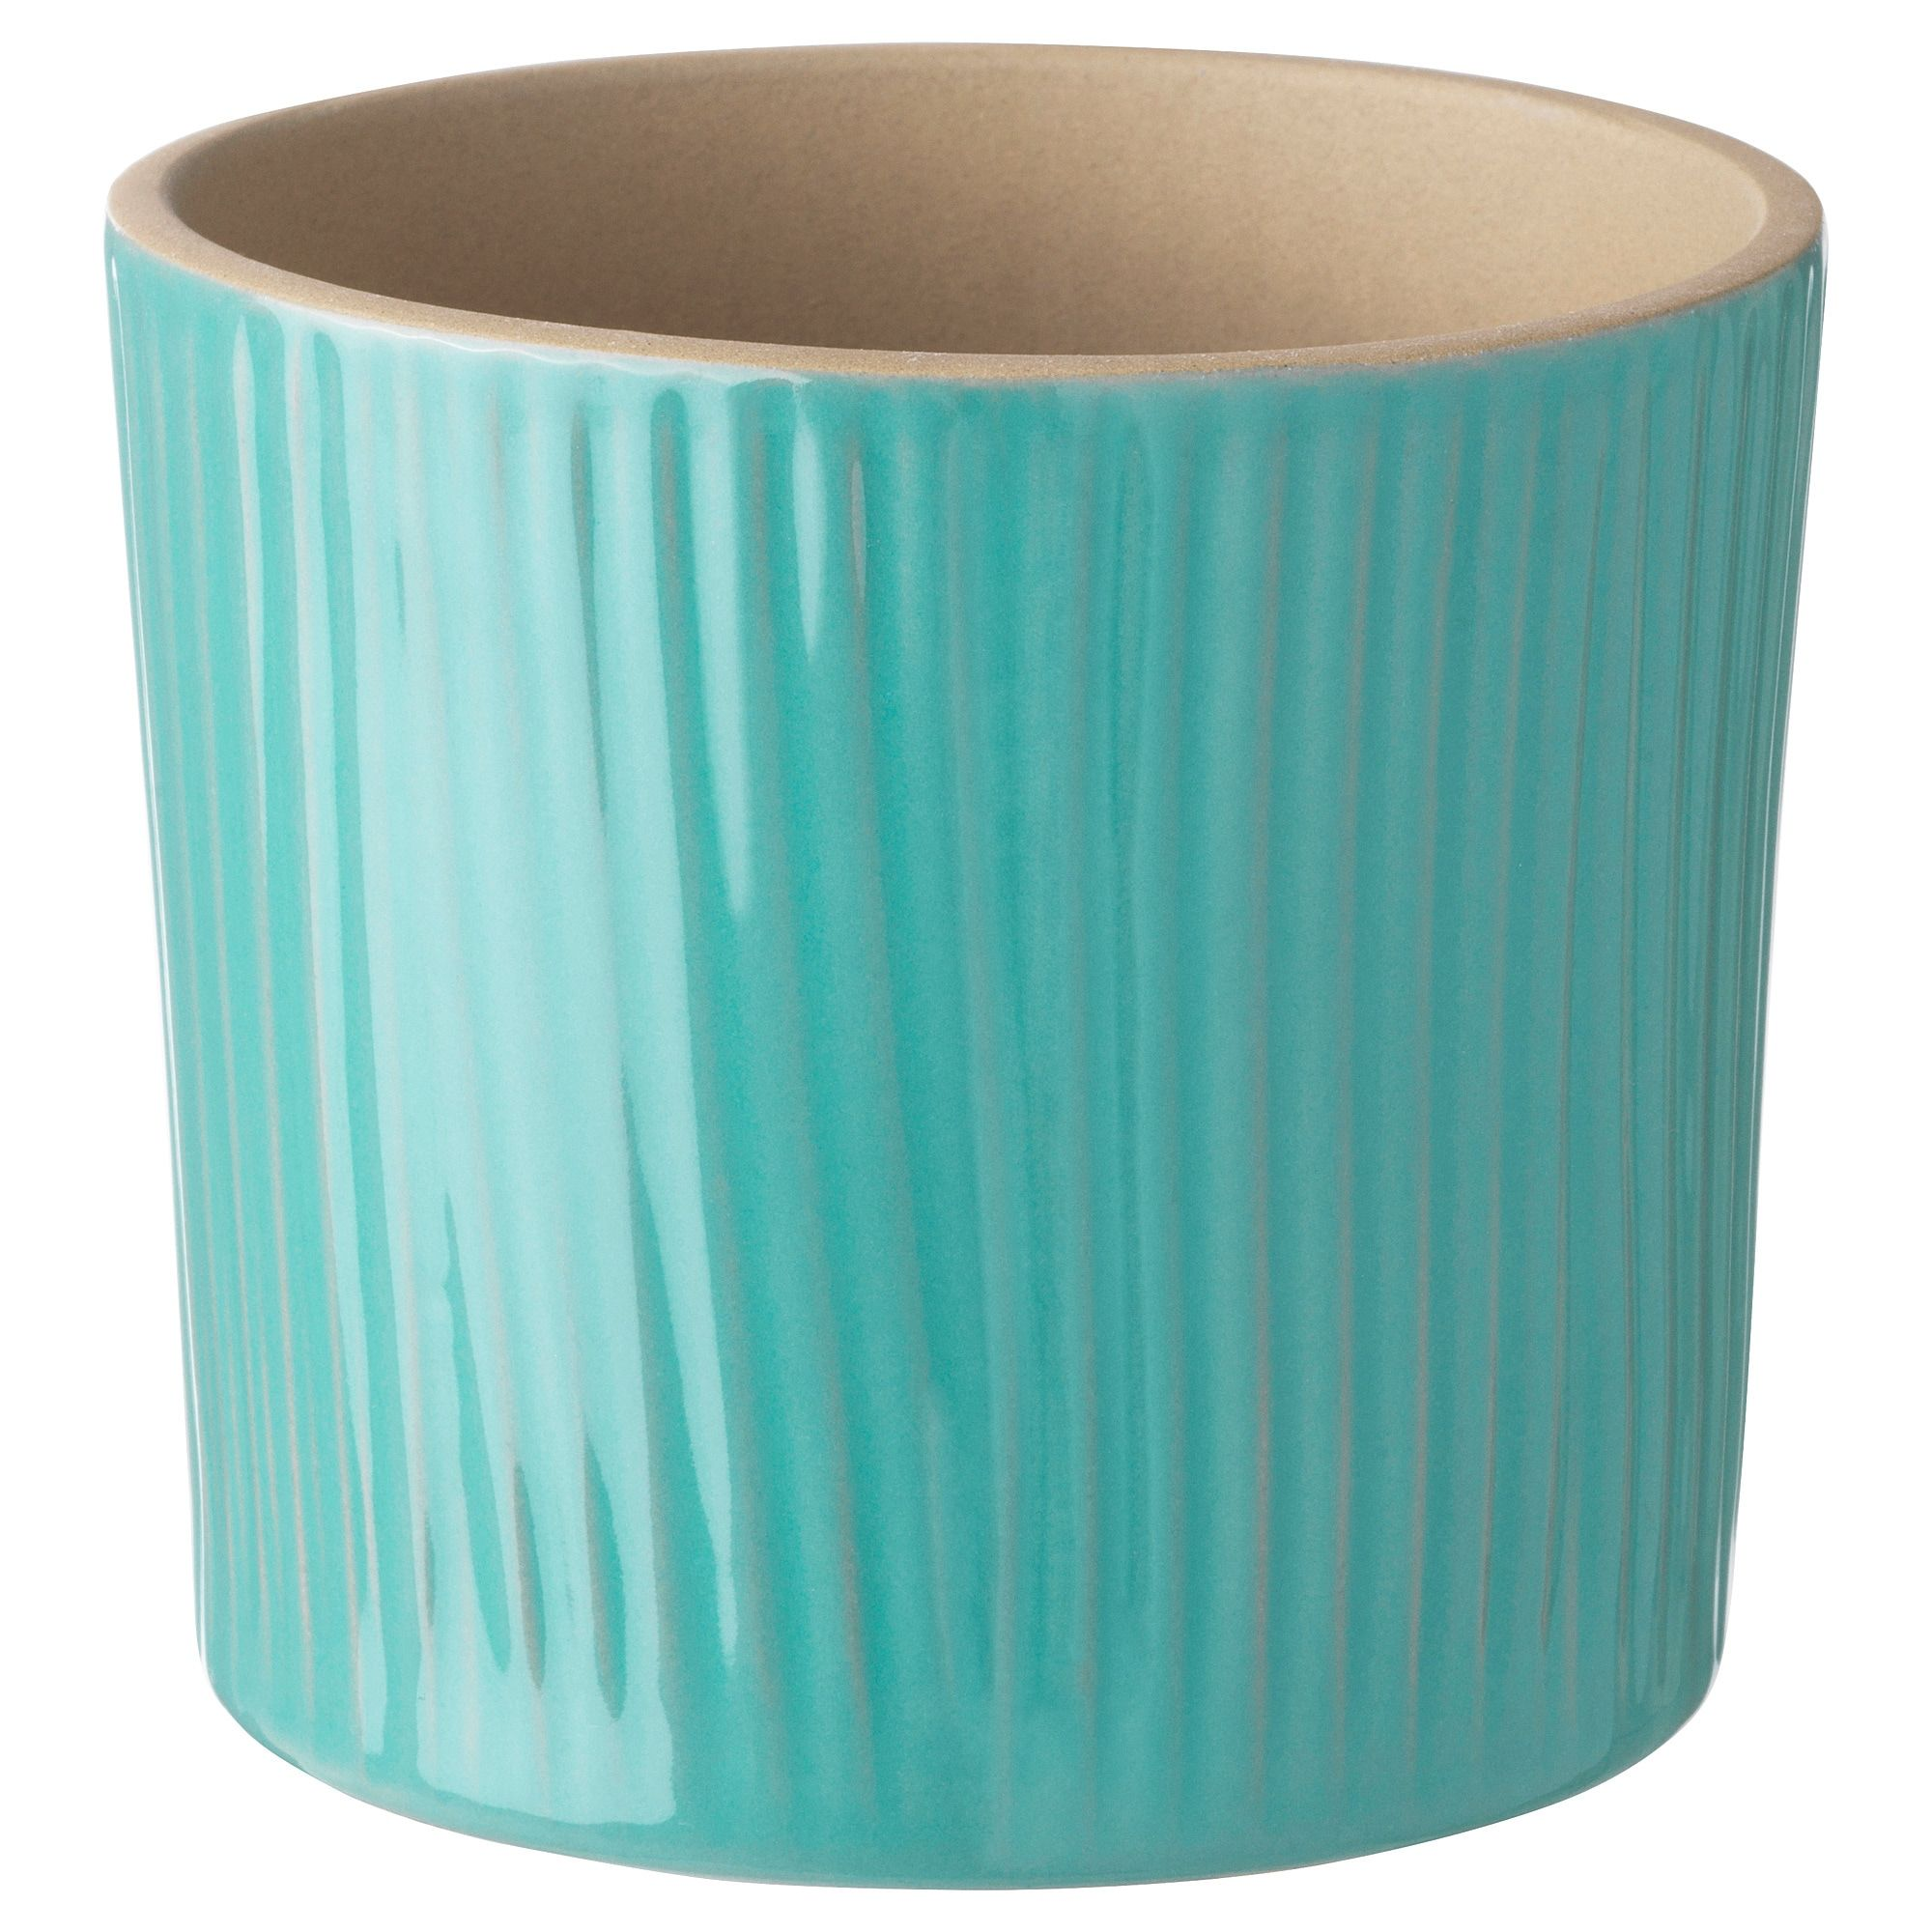 Ikea Chiafron Turquoise Plant Pot Indoor Plant Pots Potted Plants Flower Pots